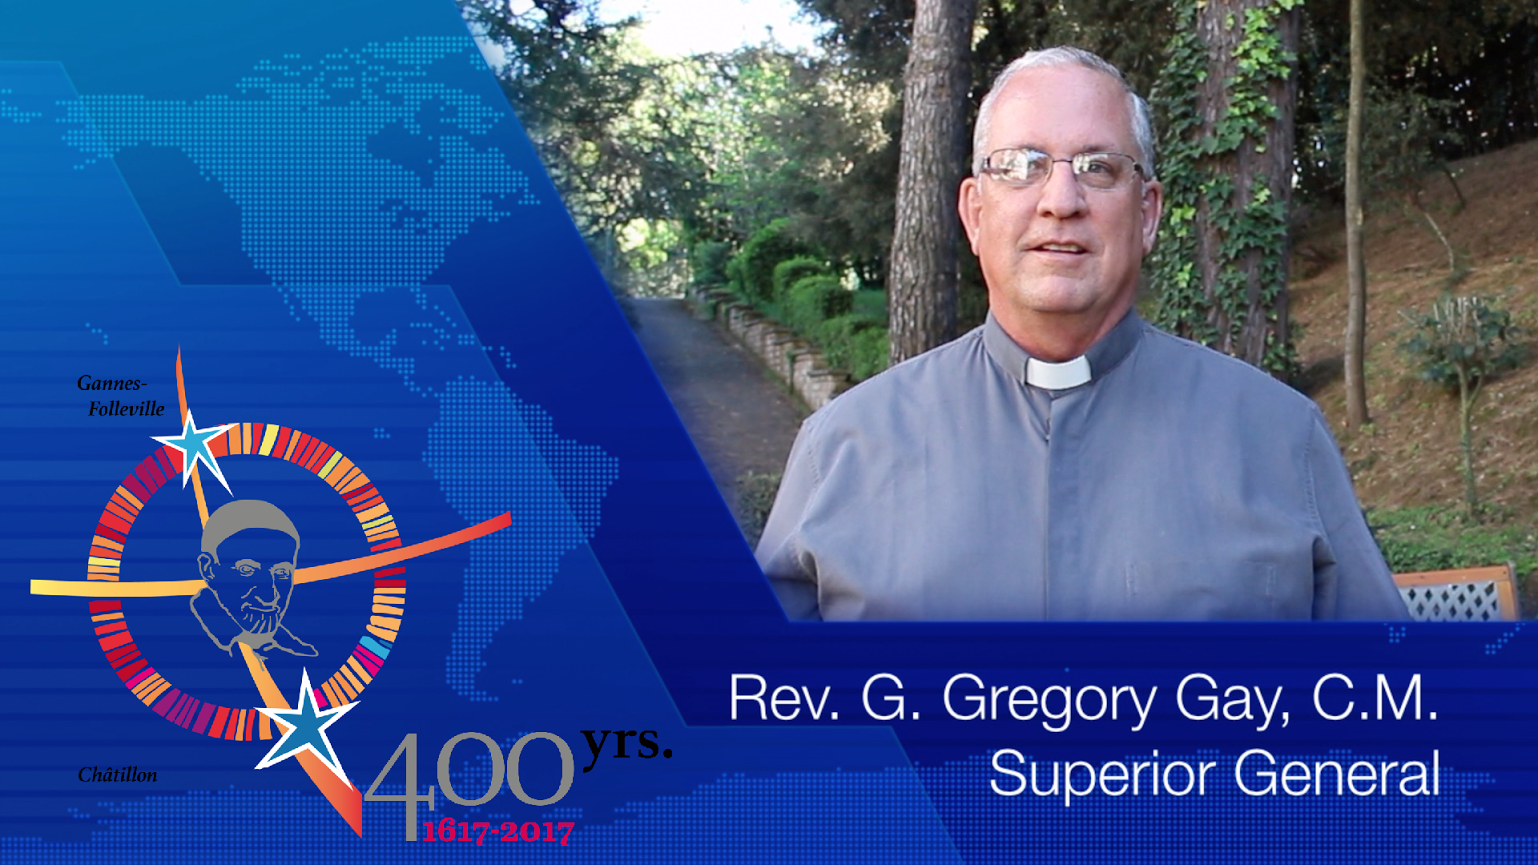 Fr. Gregory Gay, C.M.: Message for Pentecost and #famvin400